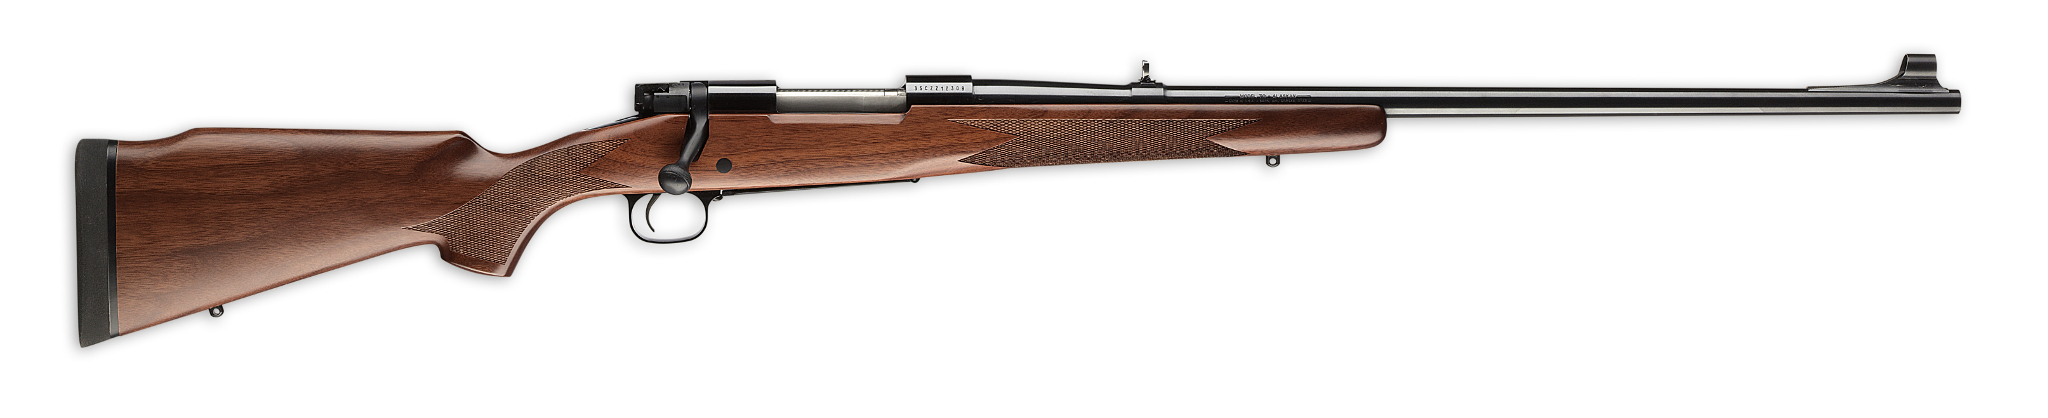 Winchester Model 70 Alaskan rifle